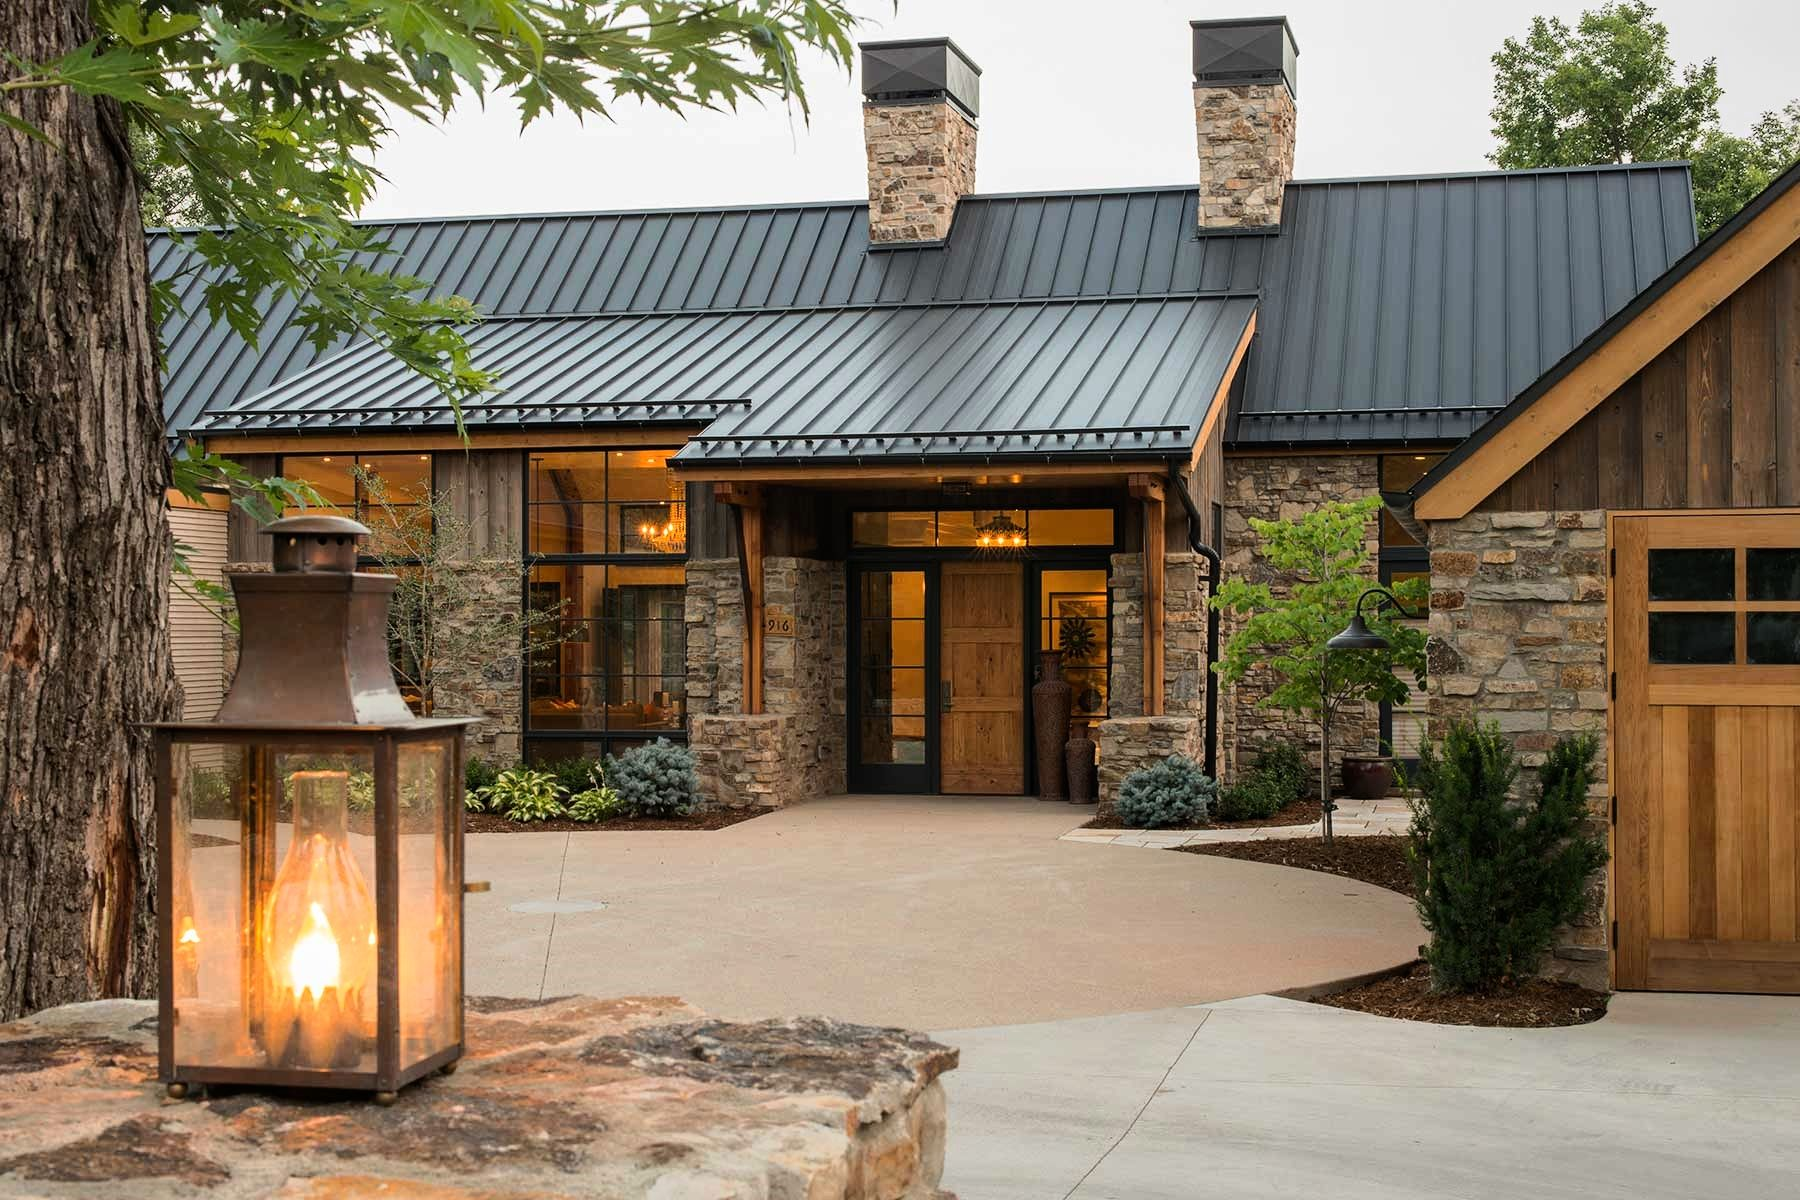 Open This Pin To See More Photos I Like The Combination Of Metal Roof Stone And Cement Board Mod Mountain Home Exterior Rustic Houses Exterior Modern Ranch